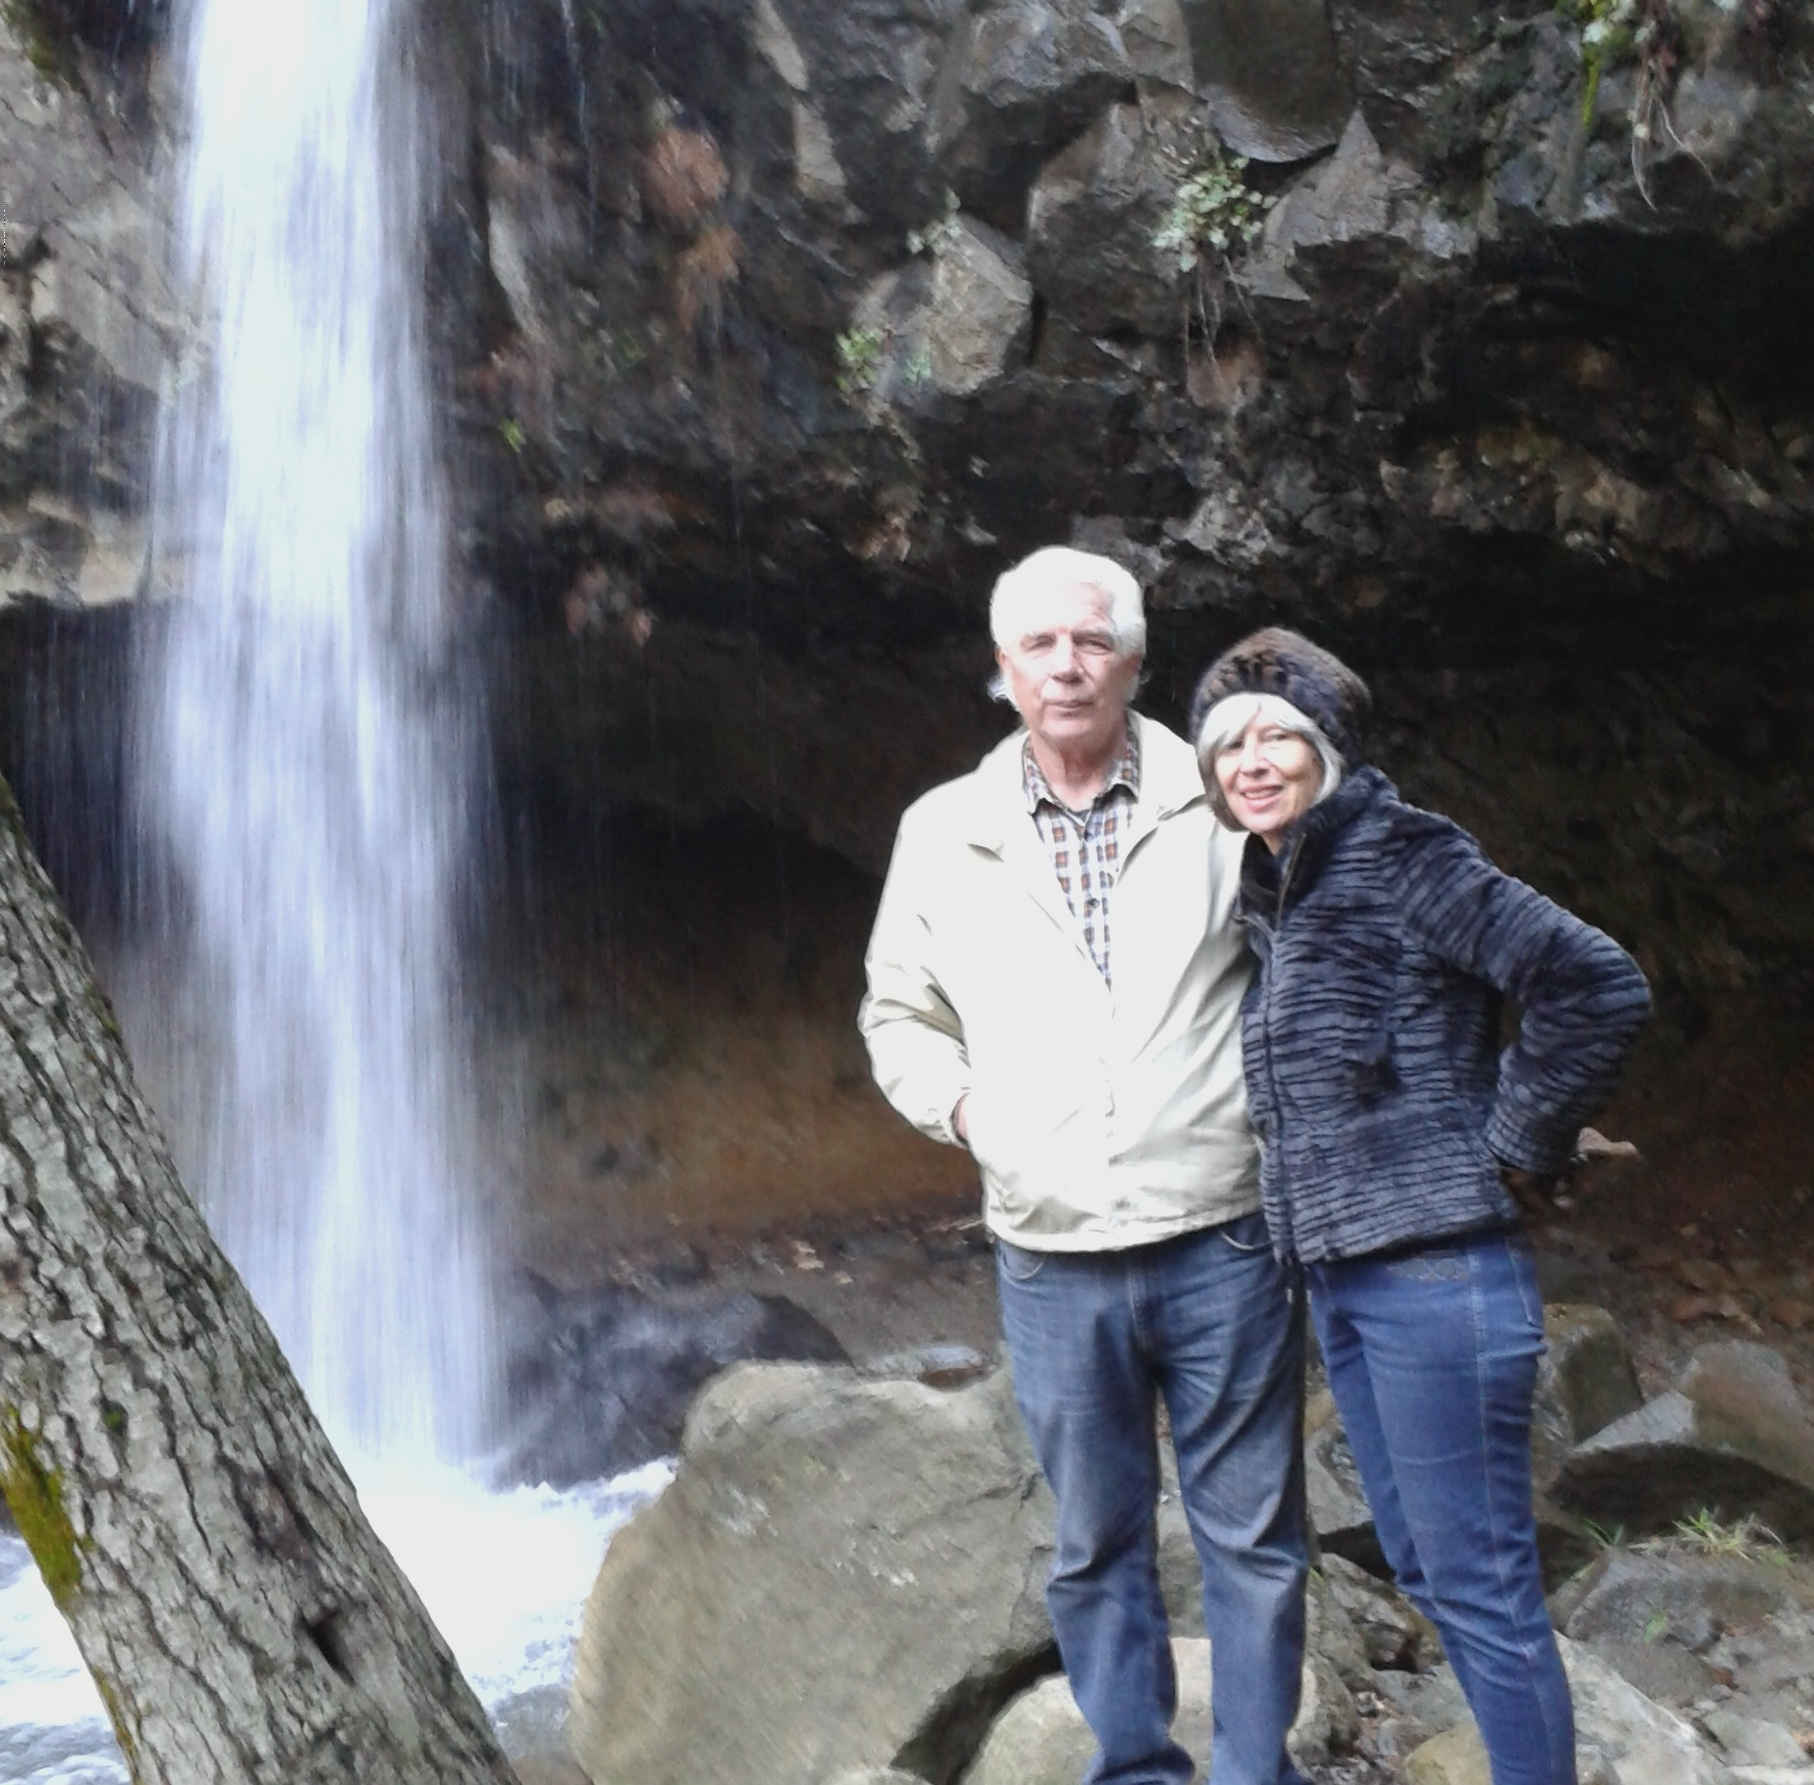 No snow but plenty cold at Hedge Creek Falls.